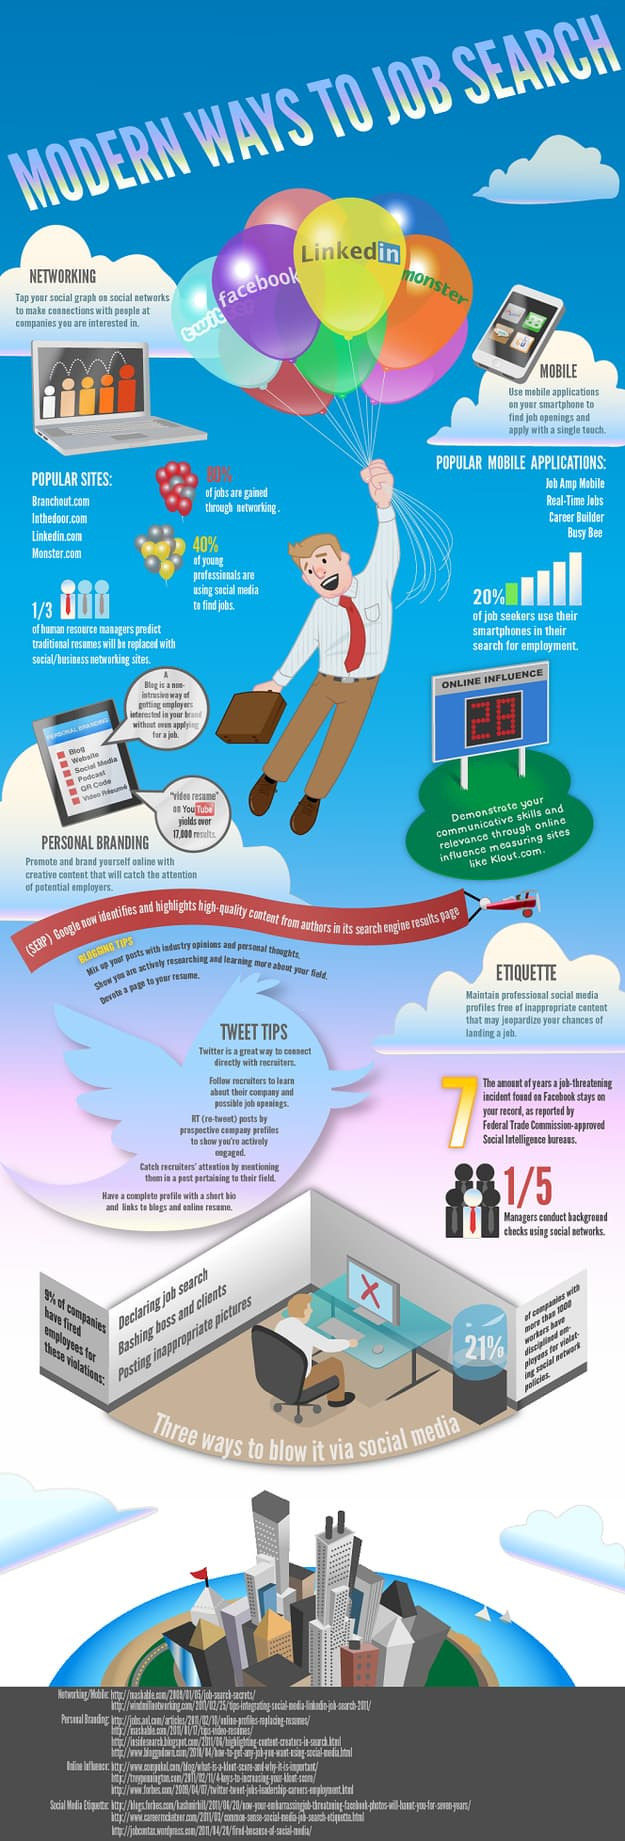 Modern Ways to Job Search Infographic